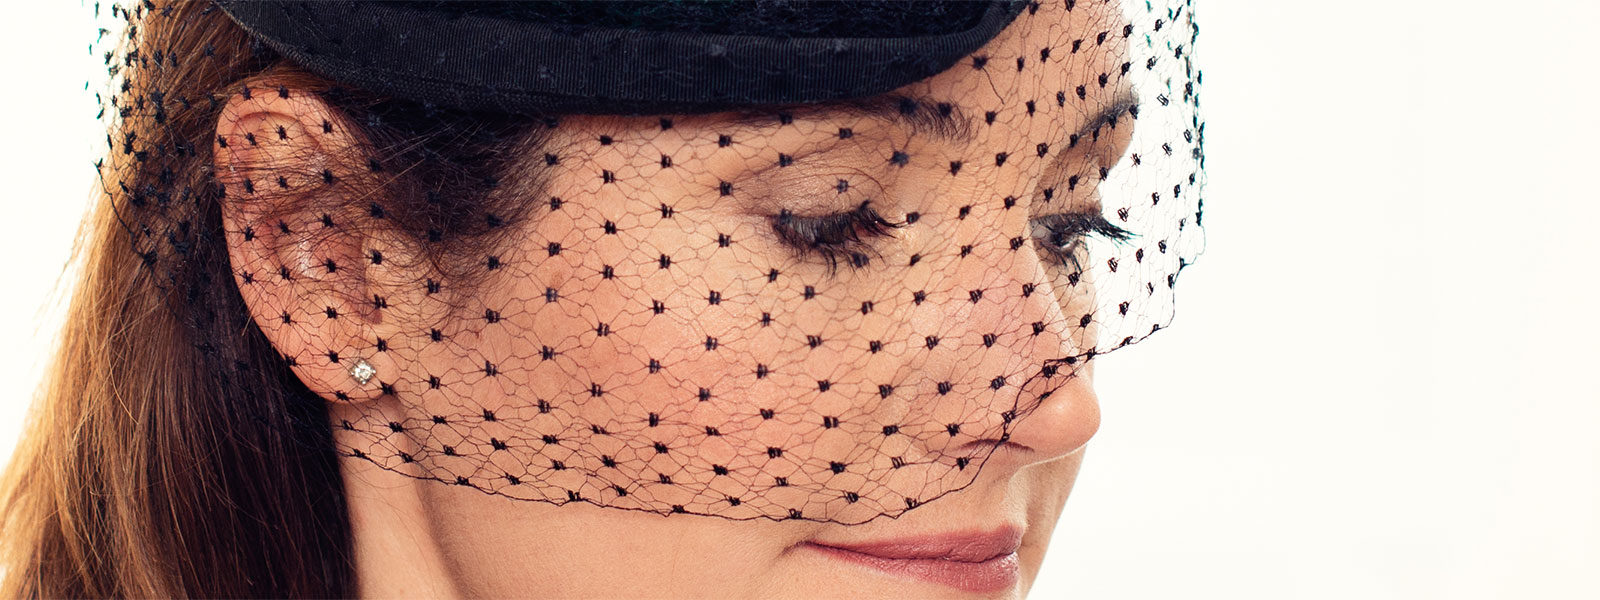 close up of face with hat and netting